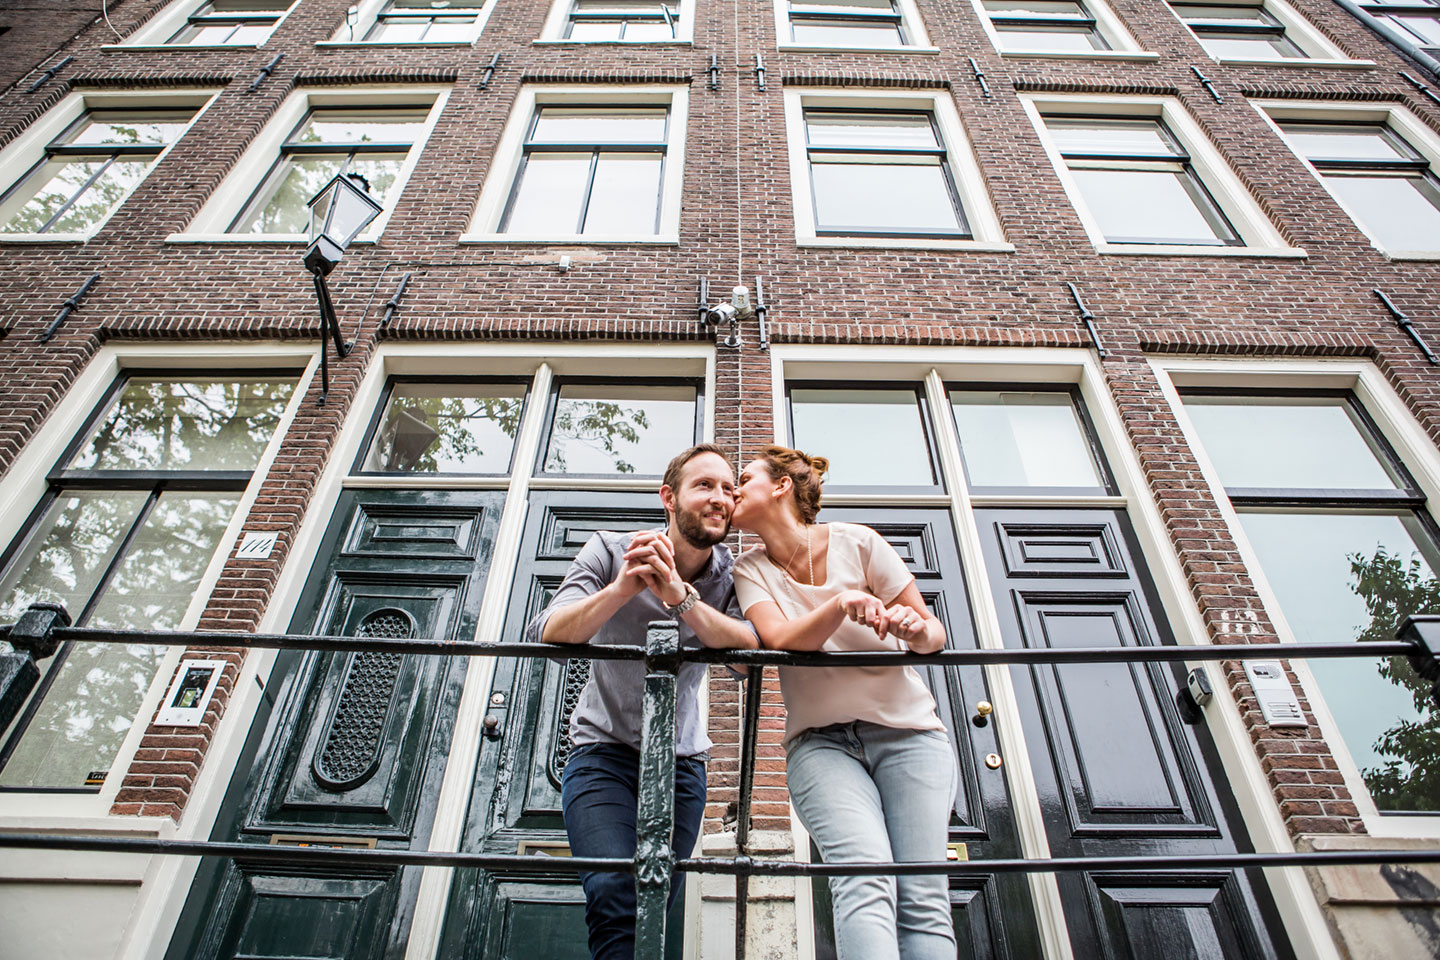 15-pre-wedding-love-shoot-Amsterdam